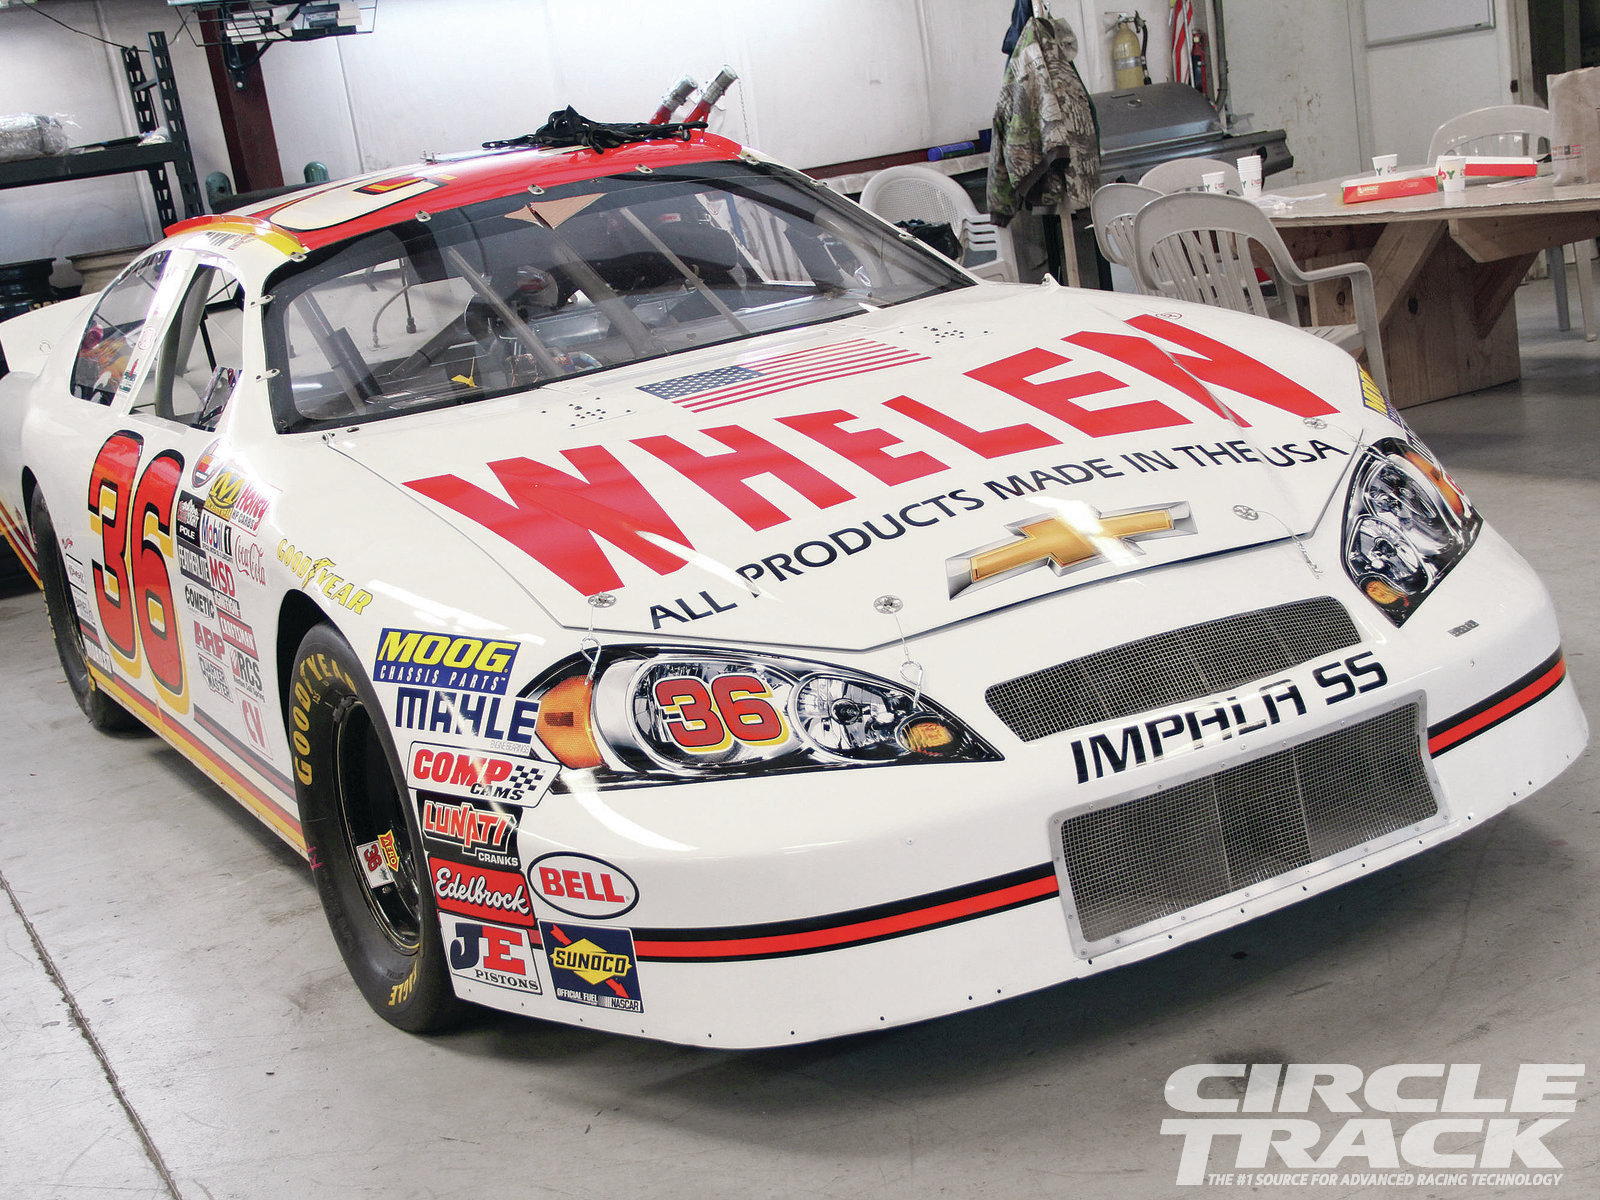 17. In addition to the Whelen All-American Series race, Dalton will also be competing in the K&N Series race on the 0.4-mile track at Daytona. It's going to be a busy week for our young driver, but we know he's up to the task.